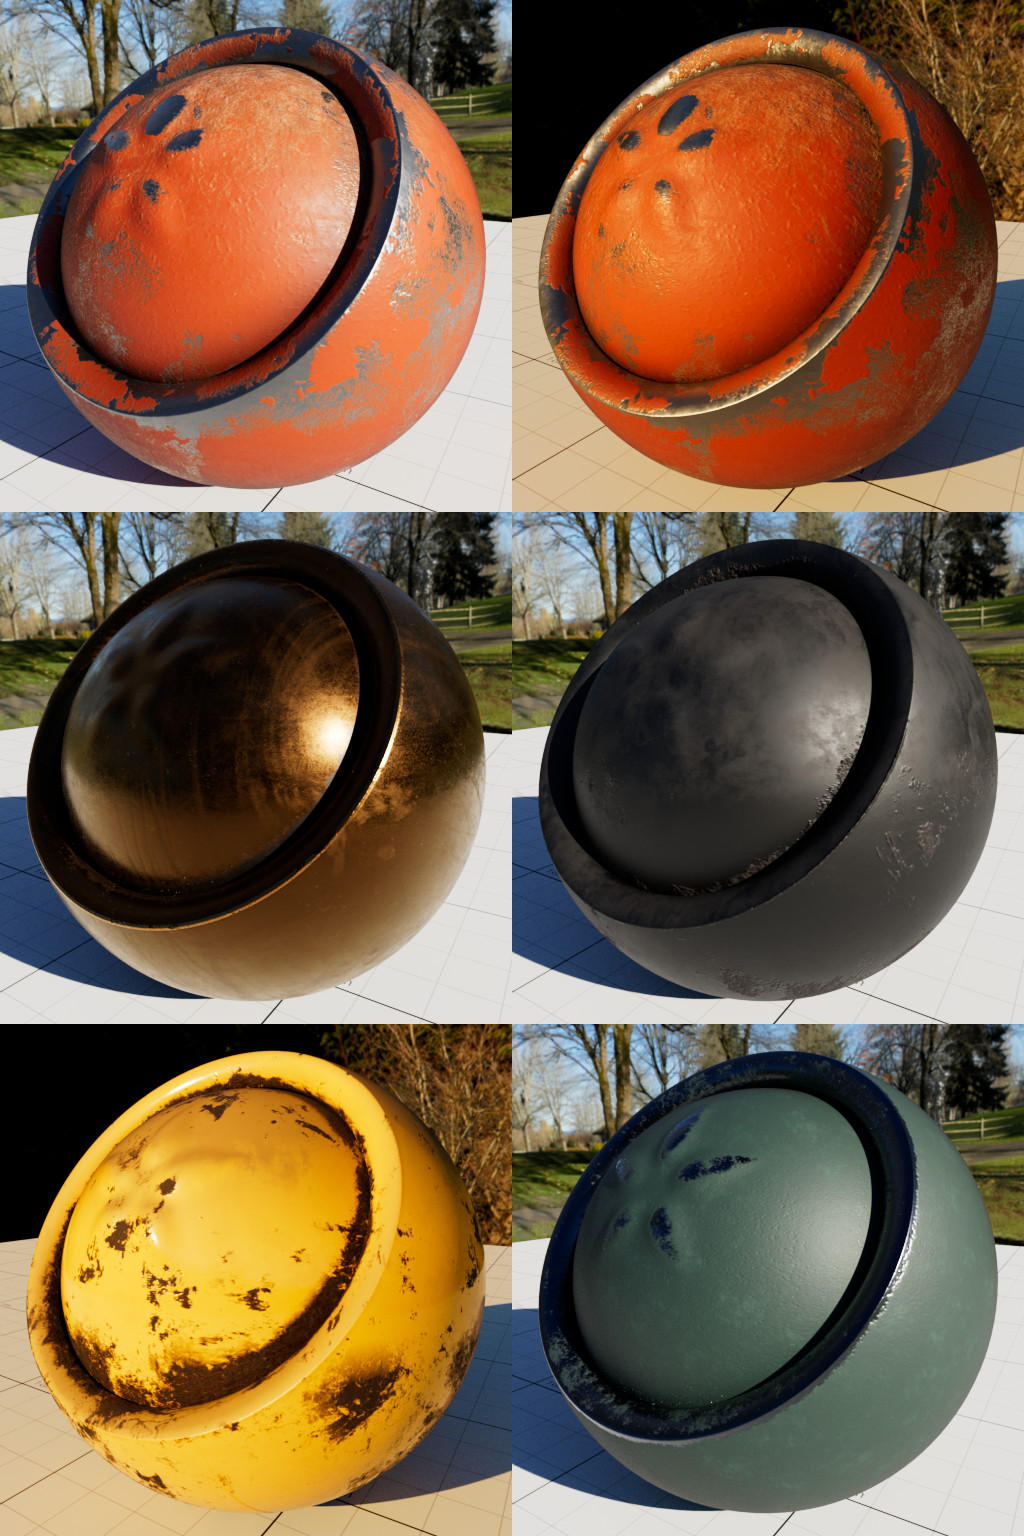 Renders using the new as_sbs_pbrmaterial OSL shader